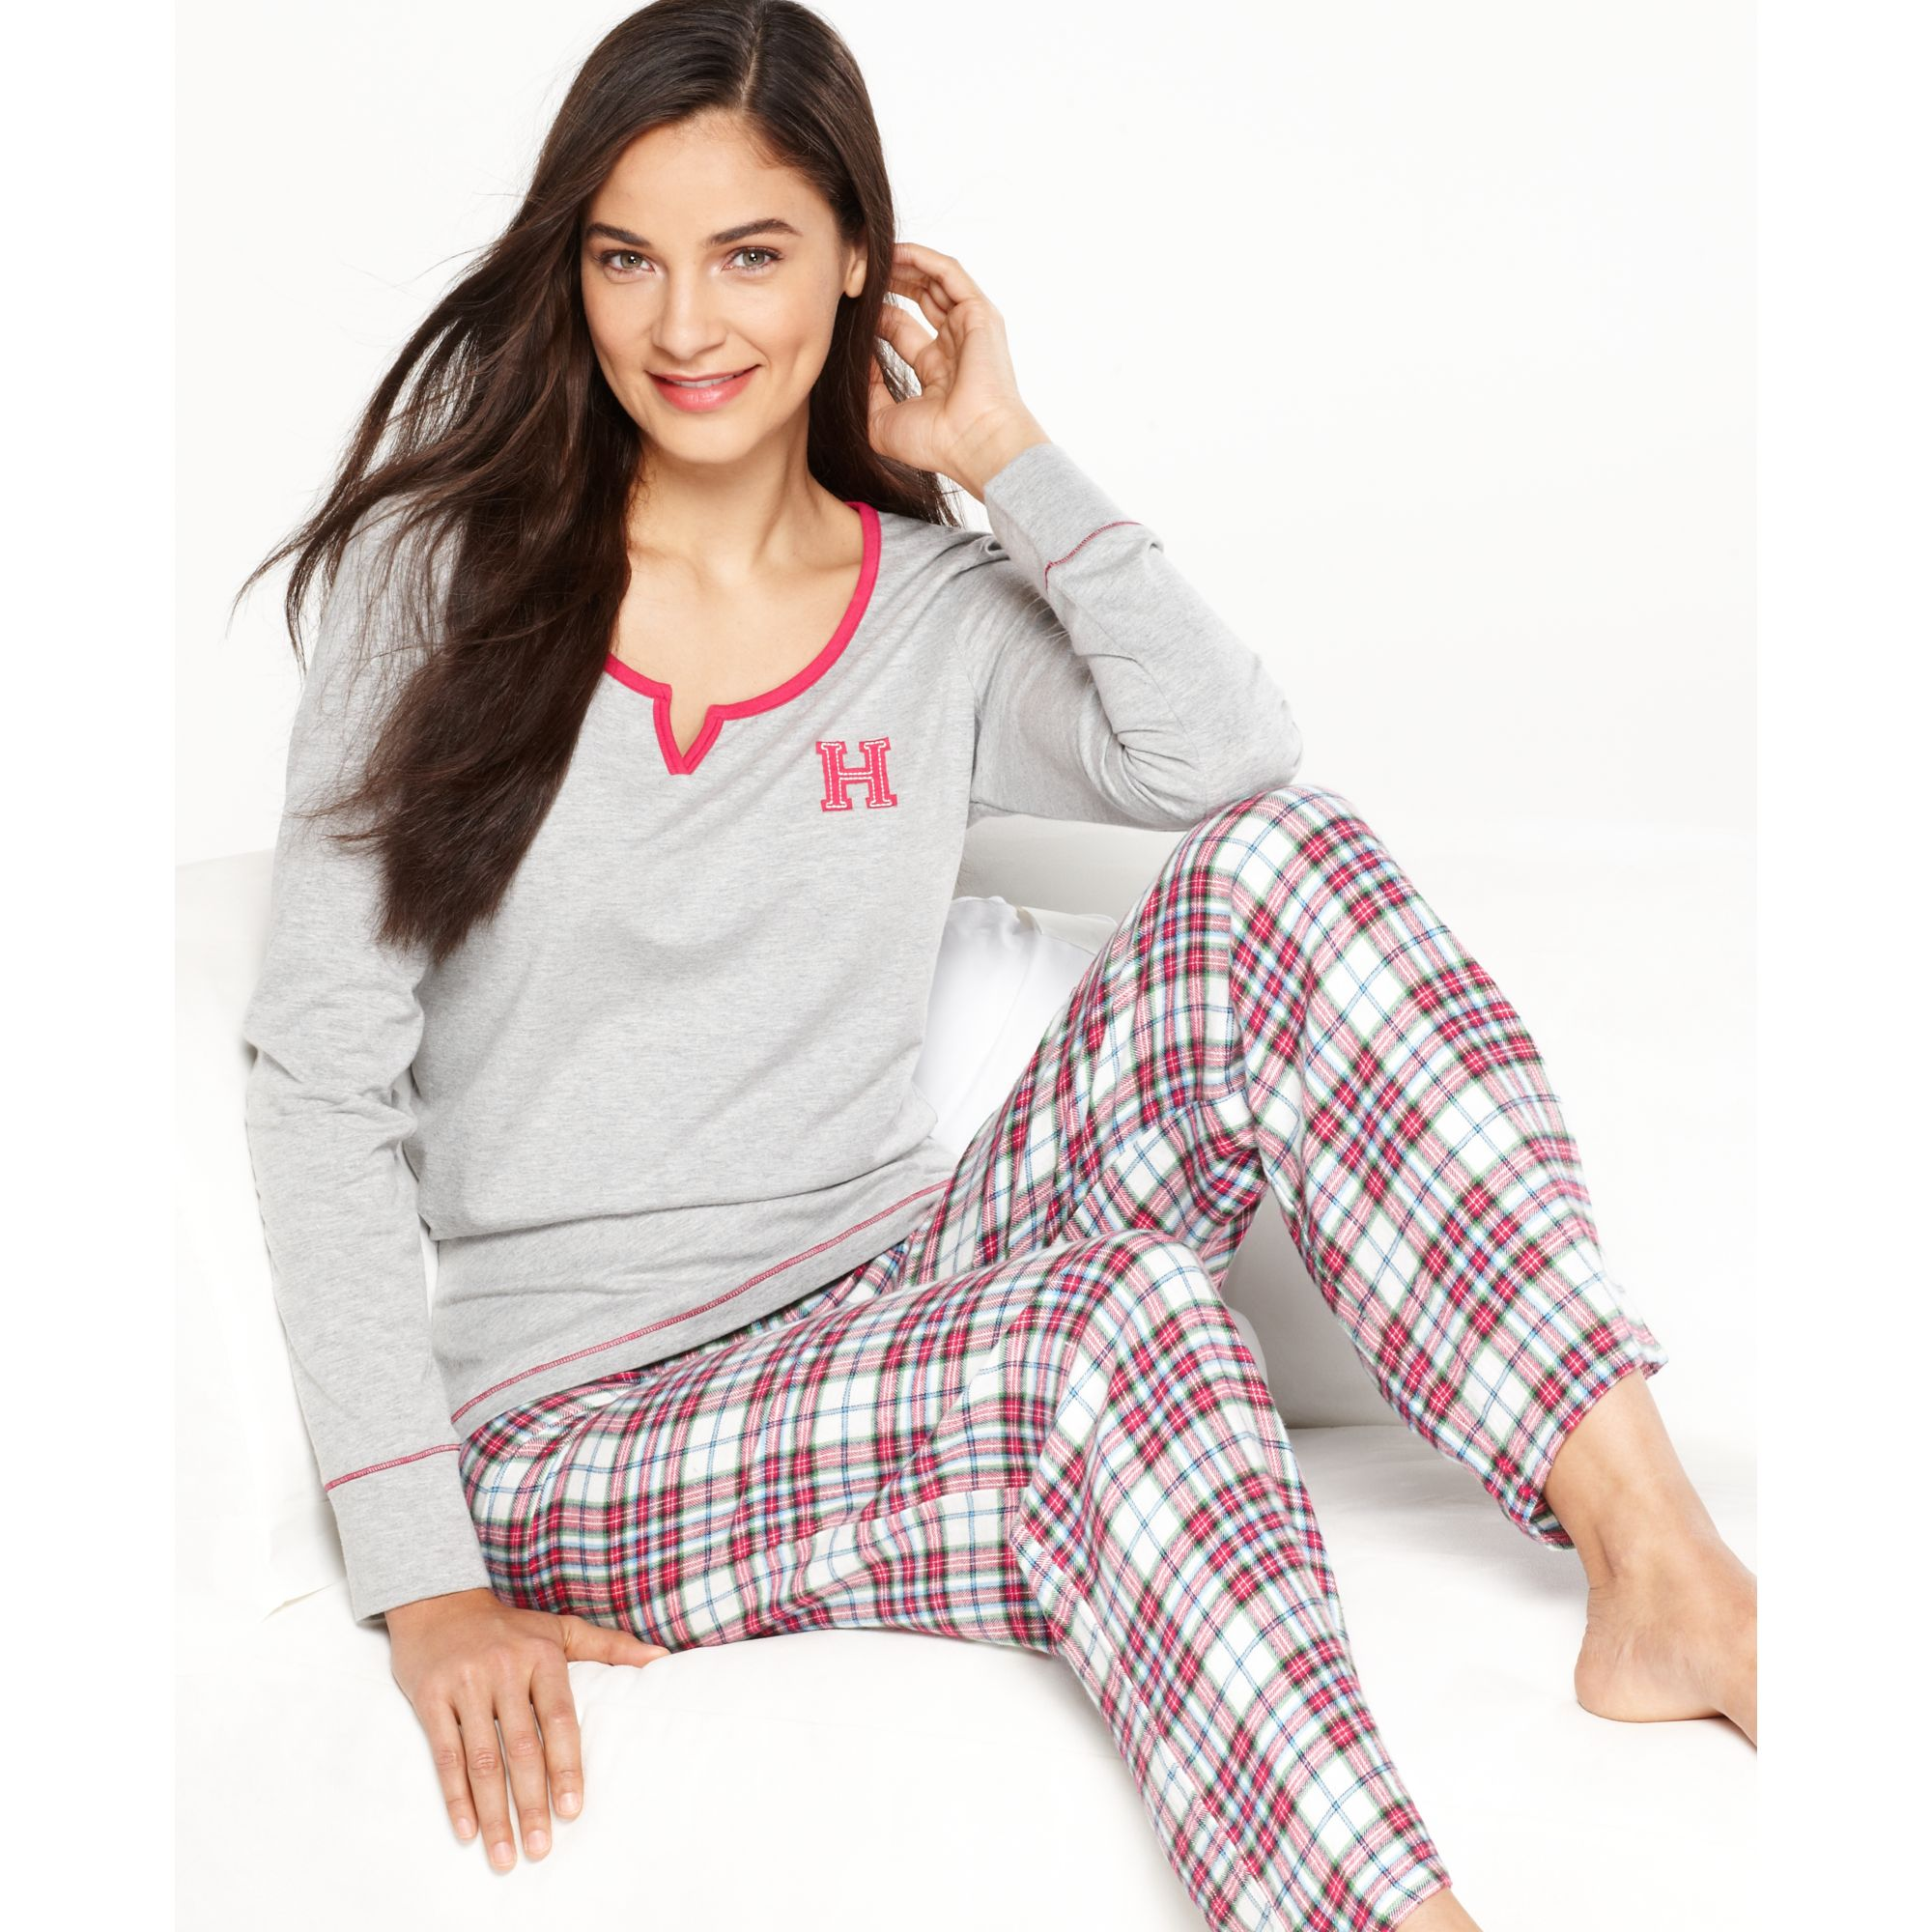 f5ea8d09 Tommy Hilfiger Top And Flannel Pajama Pants Set in Pink - Lyst